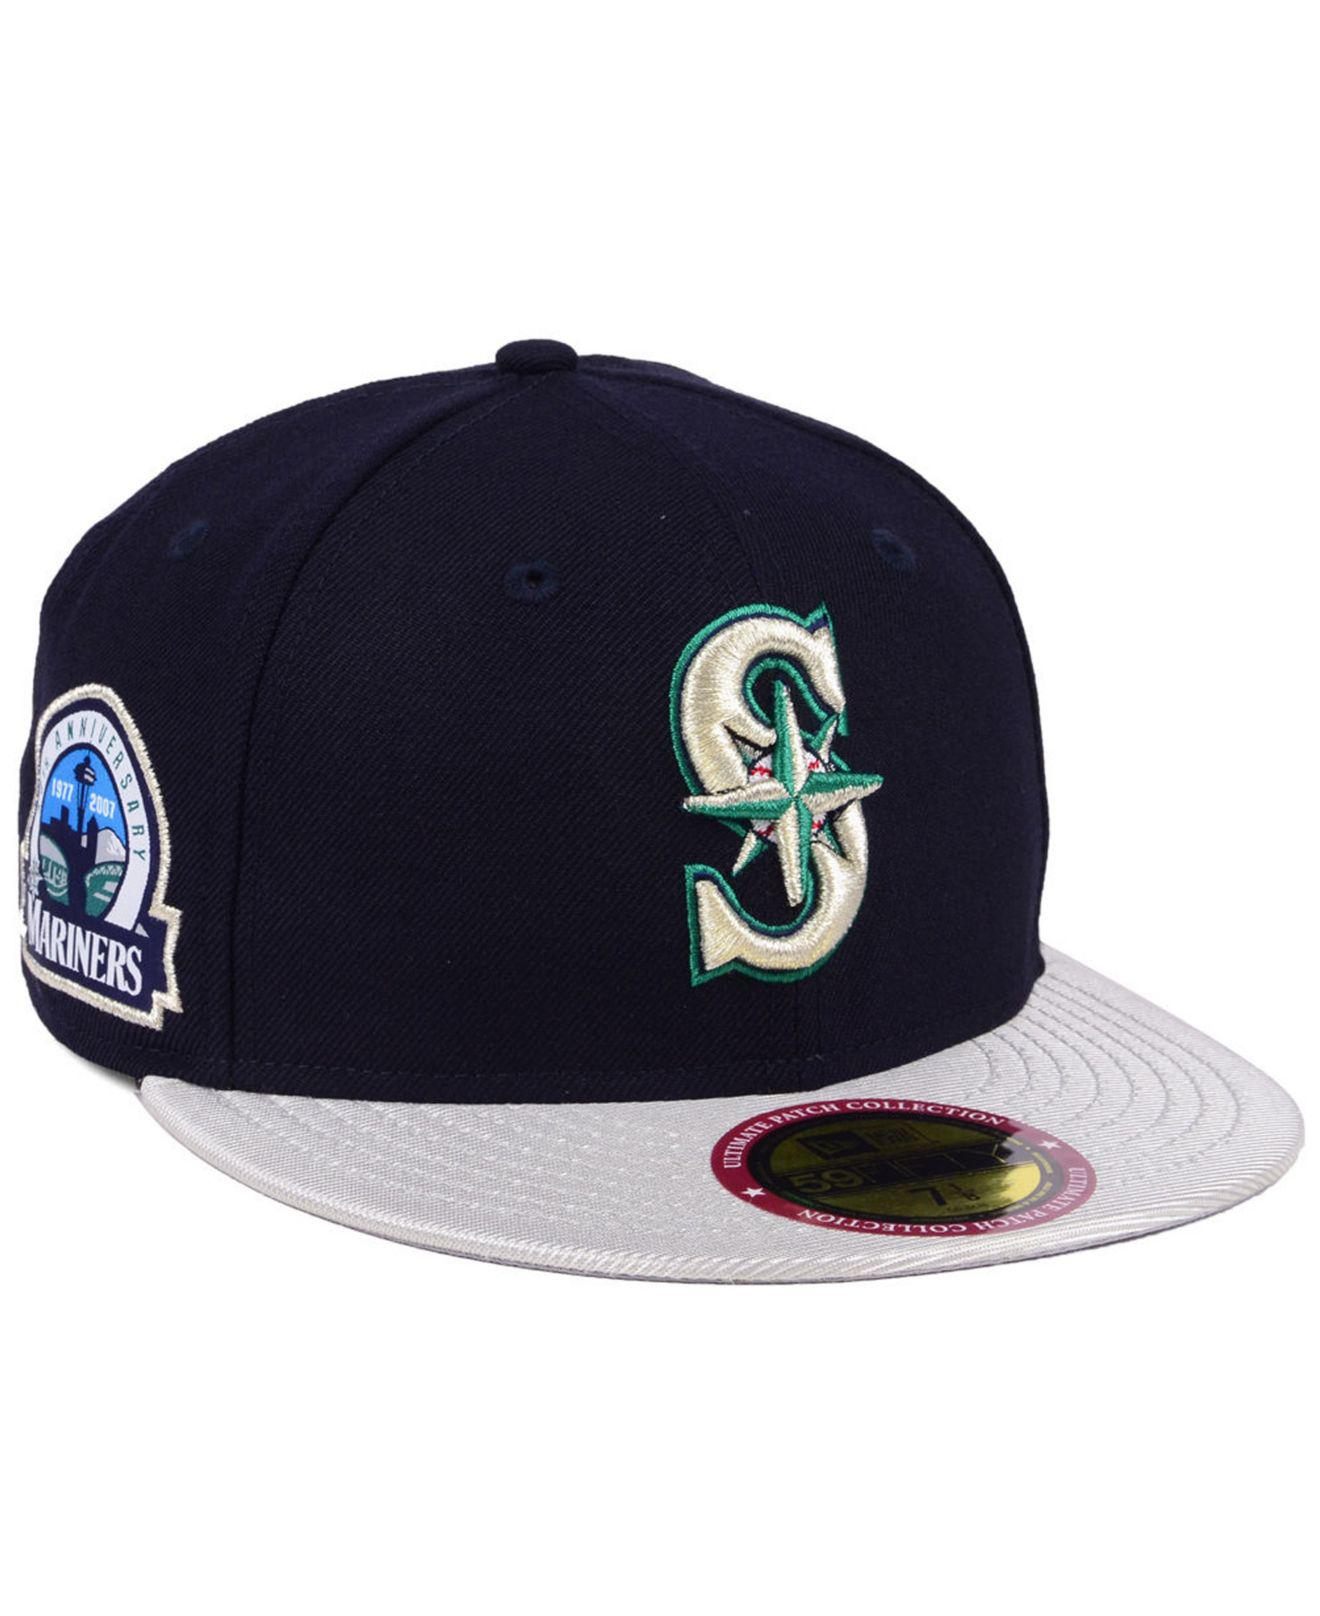 bbde0bab9c0 Lyst - KTZ Ultimate Patch Collection Anniversary 59fifty Cap in Blue ...